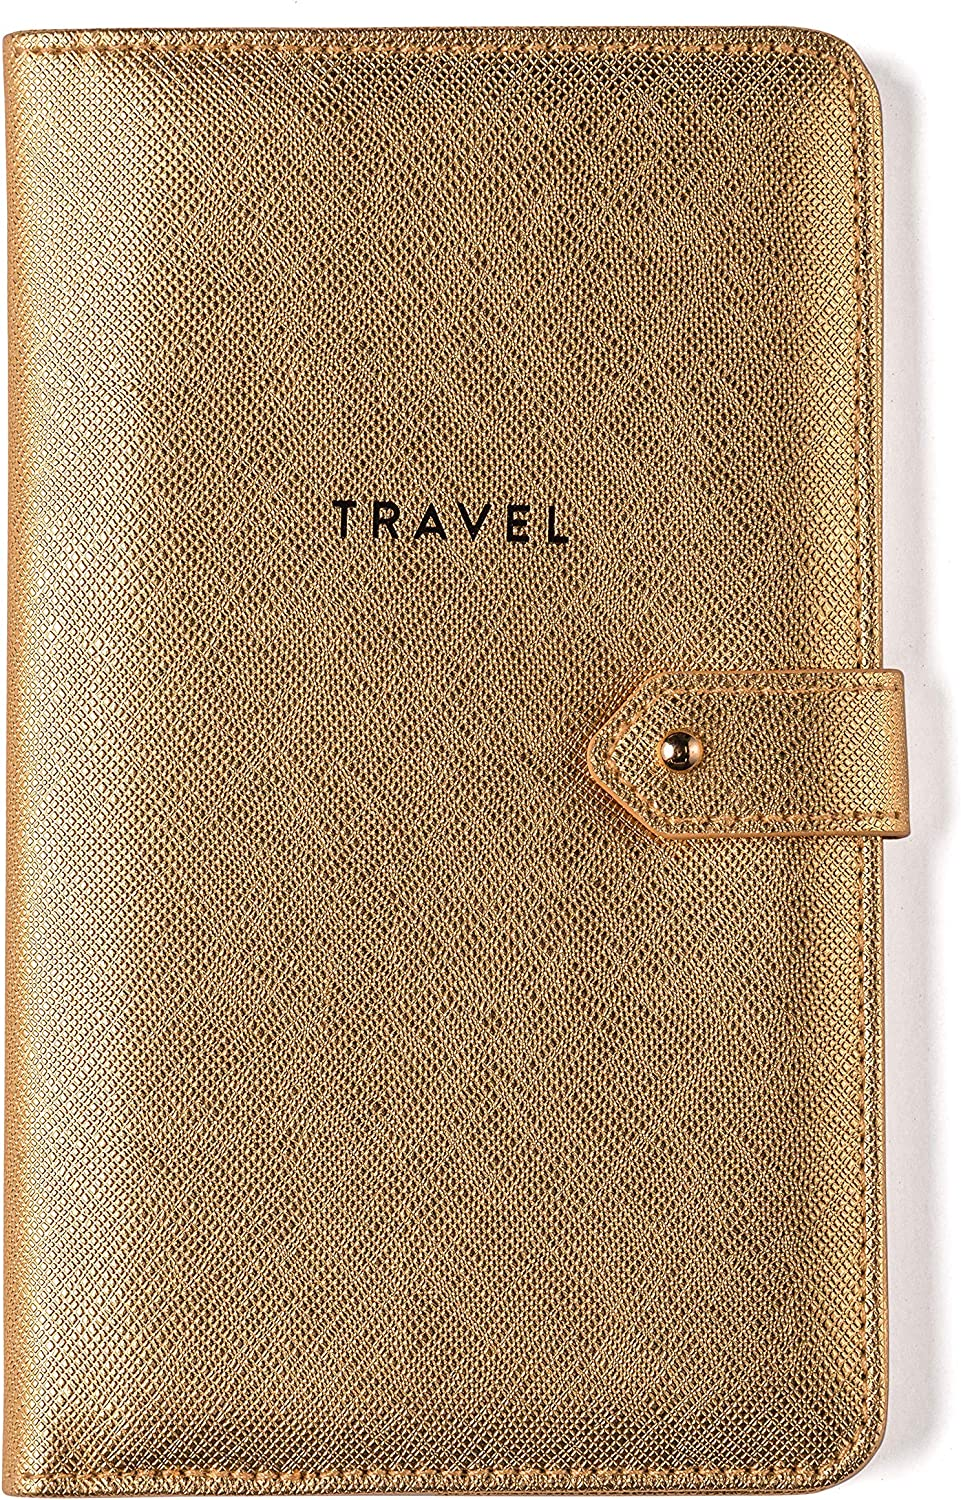 Eccolo Bifold Travel Wallet With Complete Free Shipping Closure Button Stud Organize Max 49% OFF